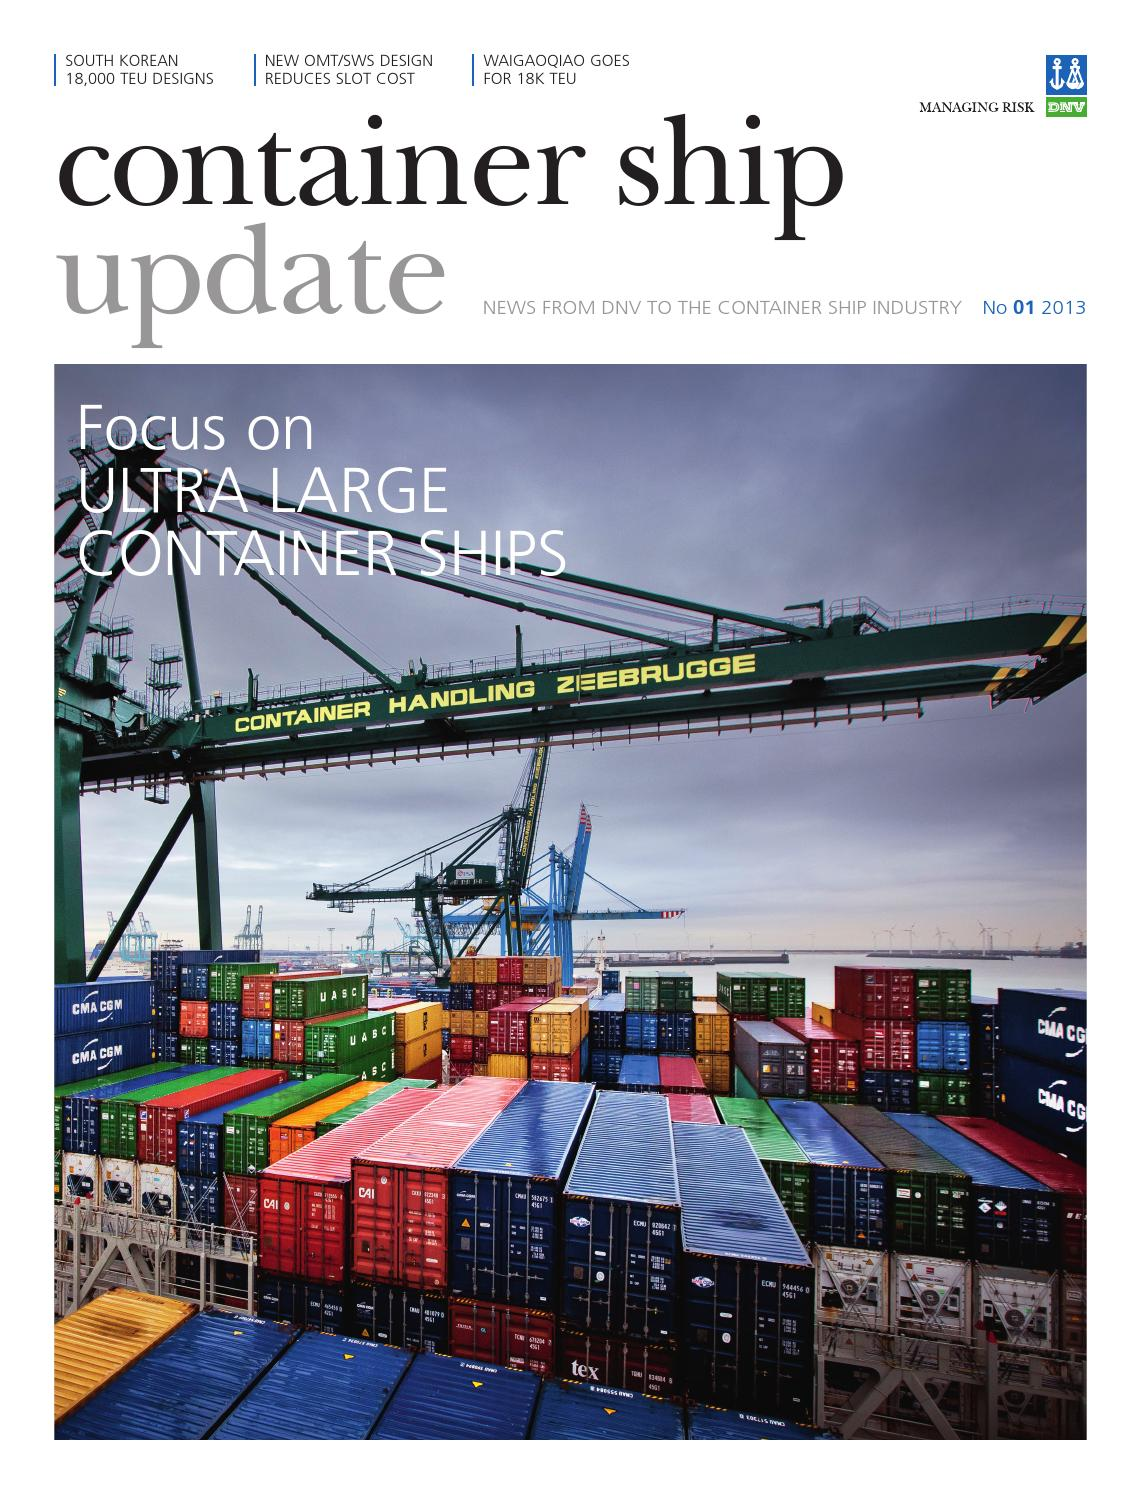 Container ship update 1 2013 by DNV GL (old account) - issuu